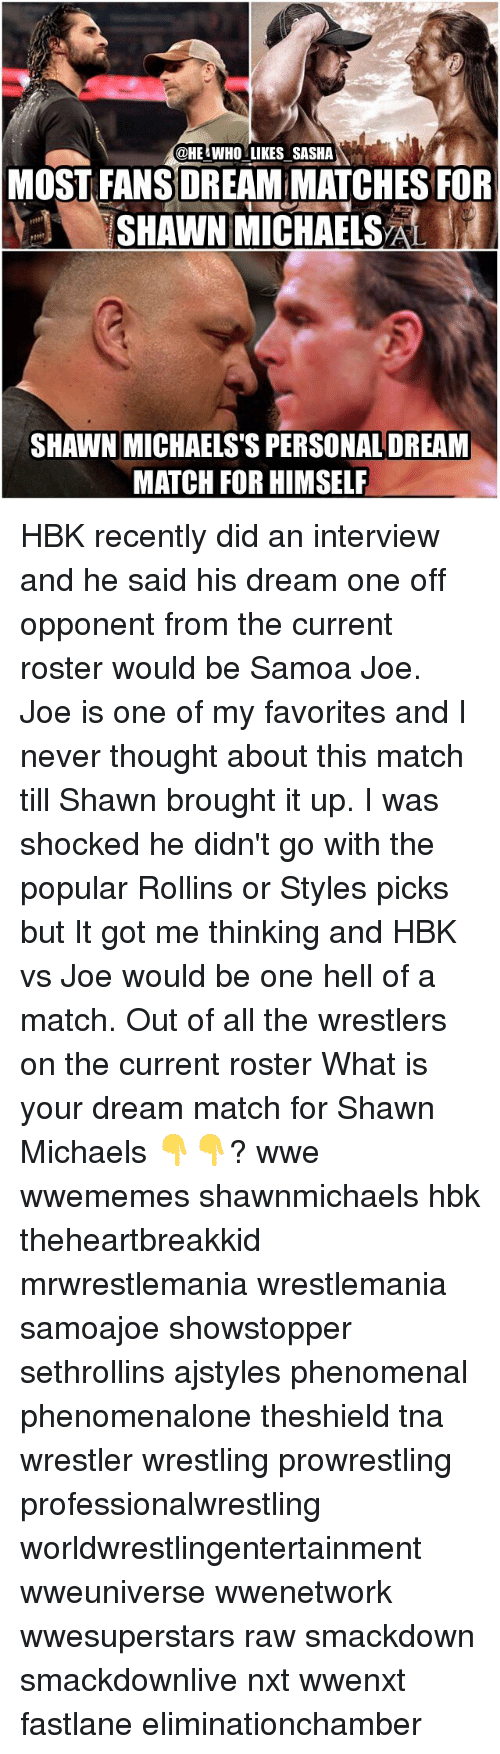 Memes, Phenomenal, and Wrestlemania: @HE WHO LIKES SASHA  MOST FANS DREAM MATCHESFOR  SHAWN MICHAELS  SHAWN MICHAELS'S PERSONAL DREAM  MATCH FOR HIMSELF HBK recently did an interview and he said his dream one off opponent from the current roster would be Samoa Joe. Joe is one of my favorites and I never thought about this match till Shawn brought it up. I was shocked he didn't go with the popular Rollins or Styles picks but It got me thinking and HBK vs Joe would be one hell of a match. Out of all the wrestlers on the current roster What is your dream match for Shawn Michaels 👇👇? wwe wwememes shawnmichaels hbk theheartbreakkid mrwrestlemania wrestlemania samoajoe showstopper sethrollins ajstyles phenomenal phenomenalone theshield tna wrestler wrestling prowrestling professionalwrestling worldwrestlingentertainment wweuniverse wwenetwork wwesuperstars raw smackdown smackdownlive nxt wwenxt fastlane eliminationchamber